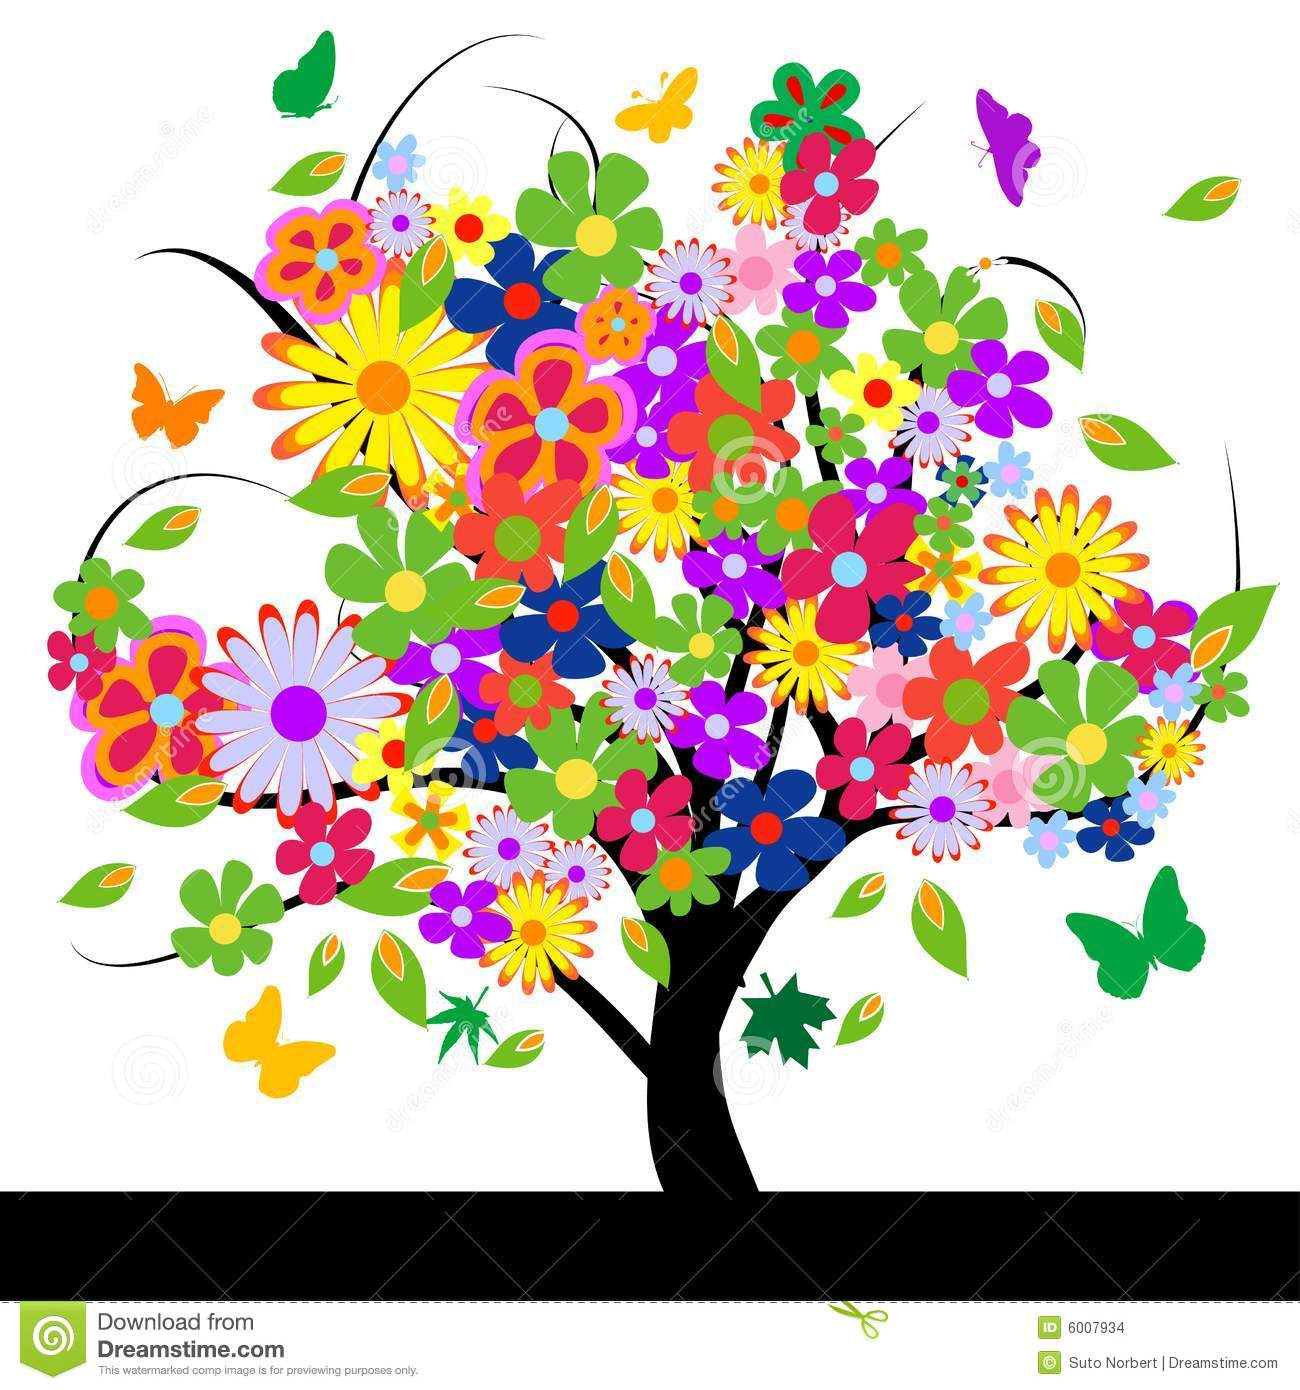 Abstract tree with flowers stock vector. Illustration of ...